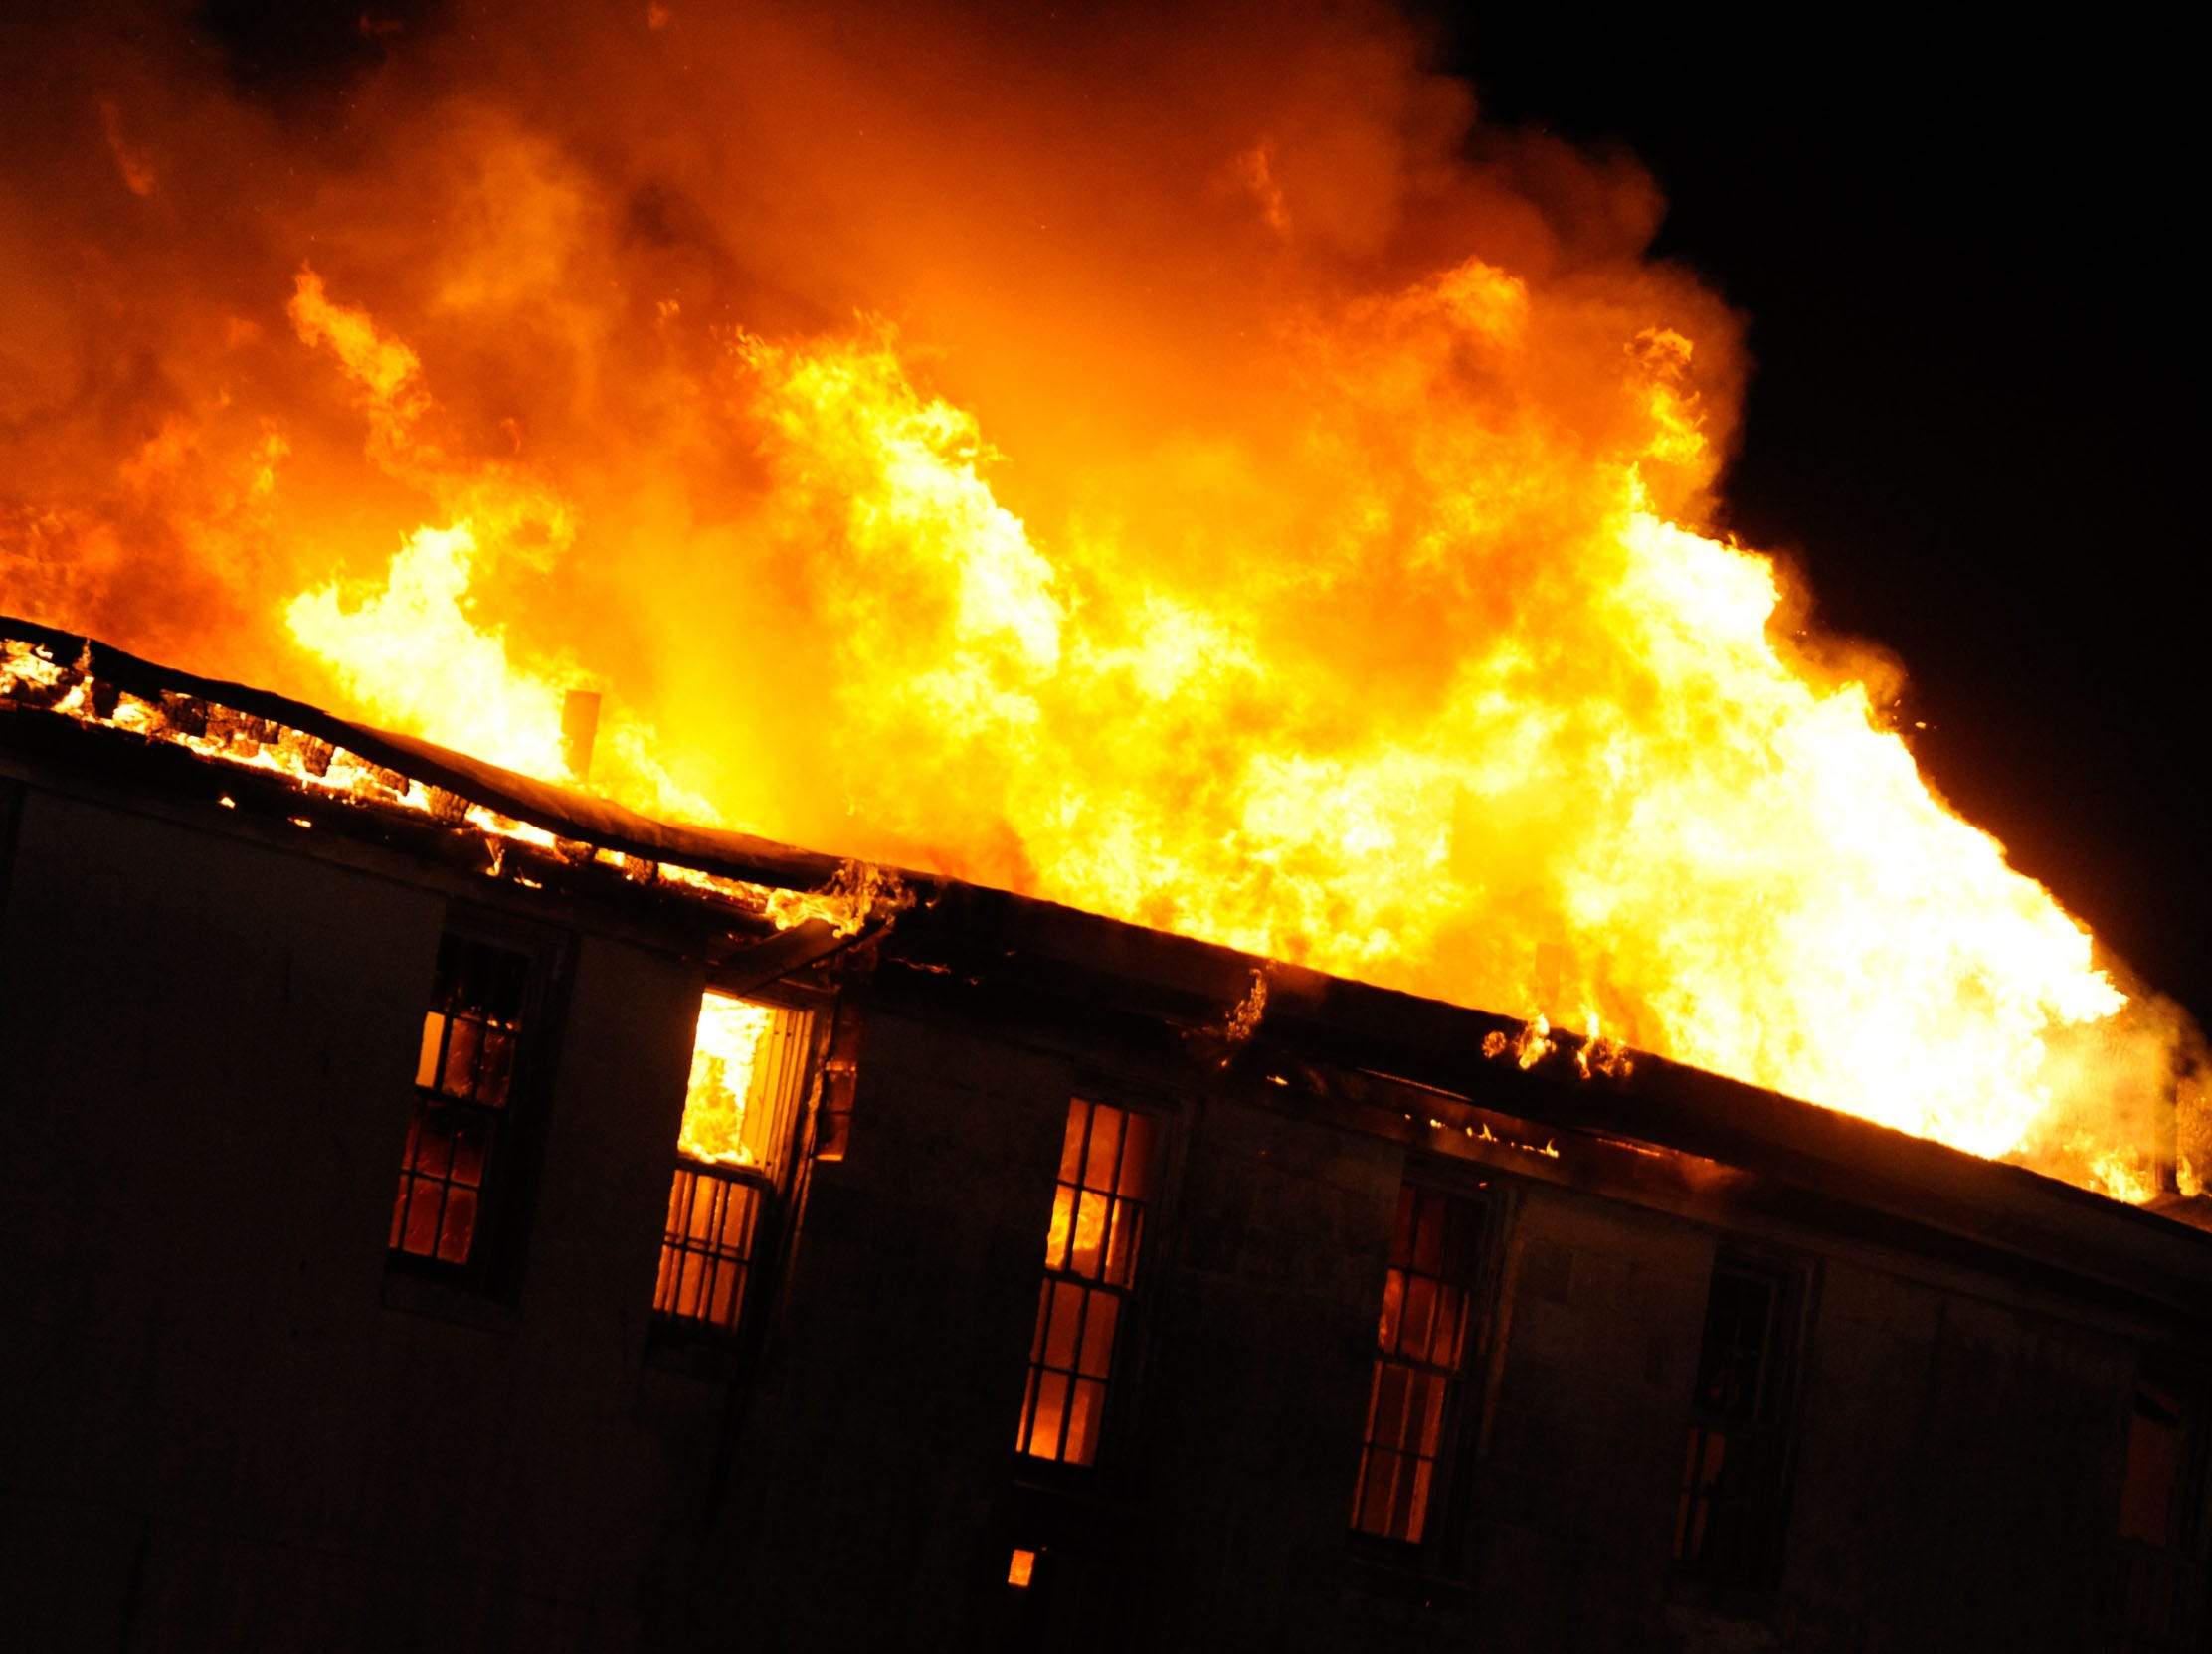 The Whispering Pines Motel in Tasley, Va. burns on Tuesday, March 12, 2013. Investigators believe the fire to be the work of an arsonist in Accomack County who has set more that 65 fires since November. The motel is the largest fire set so far. Parts of the motel date to the 1930s.